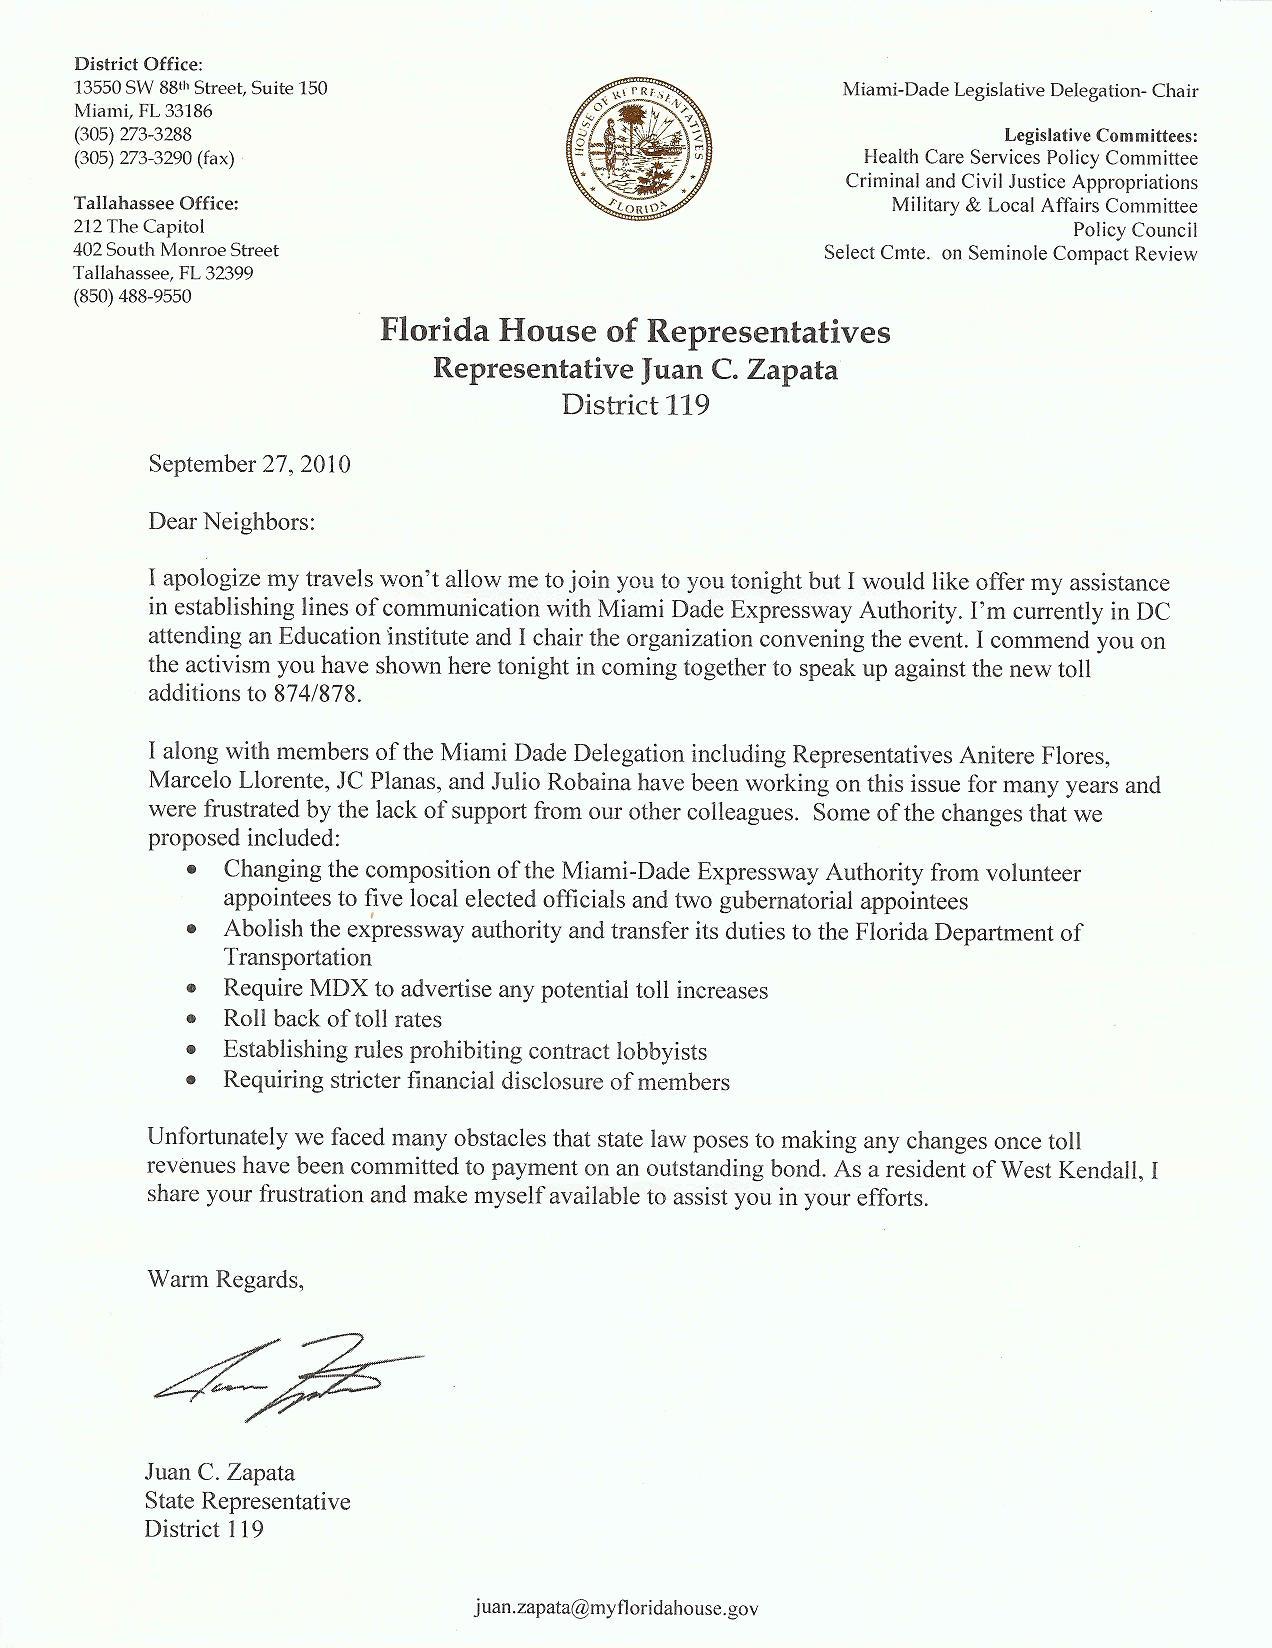 28 Business Letter Format To State Representative